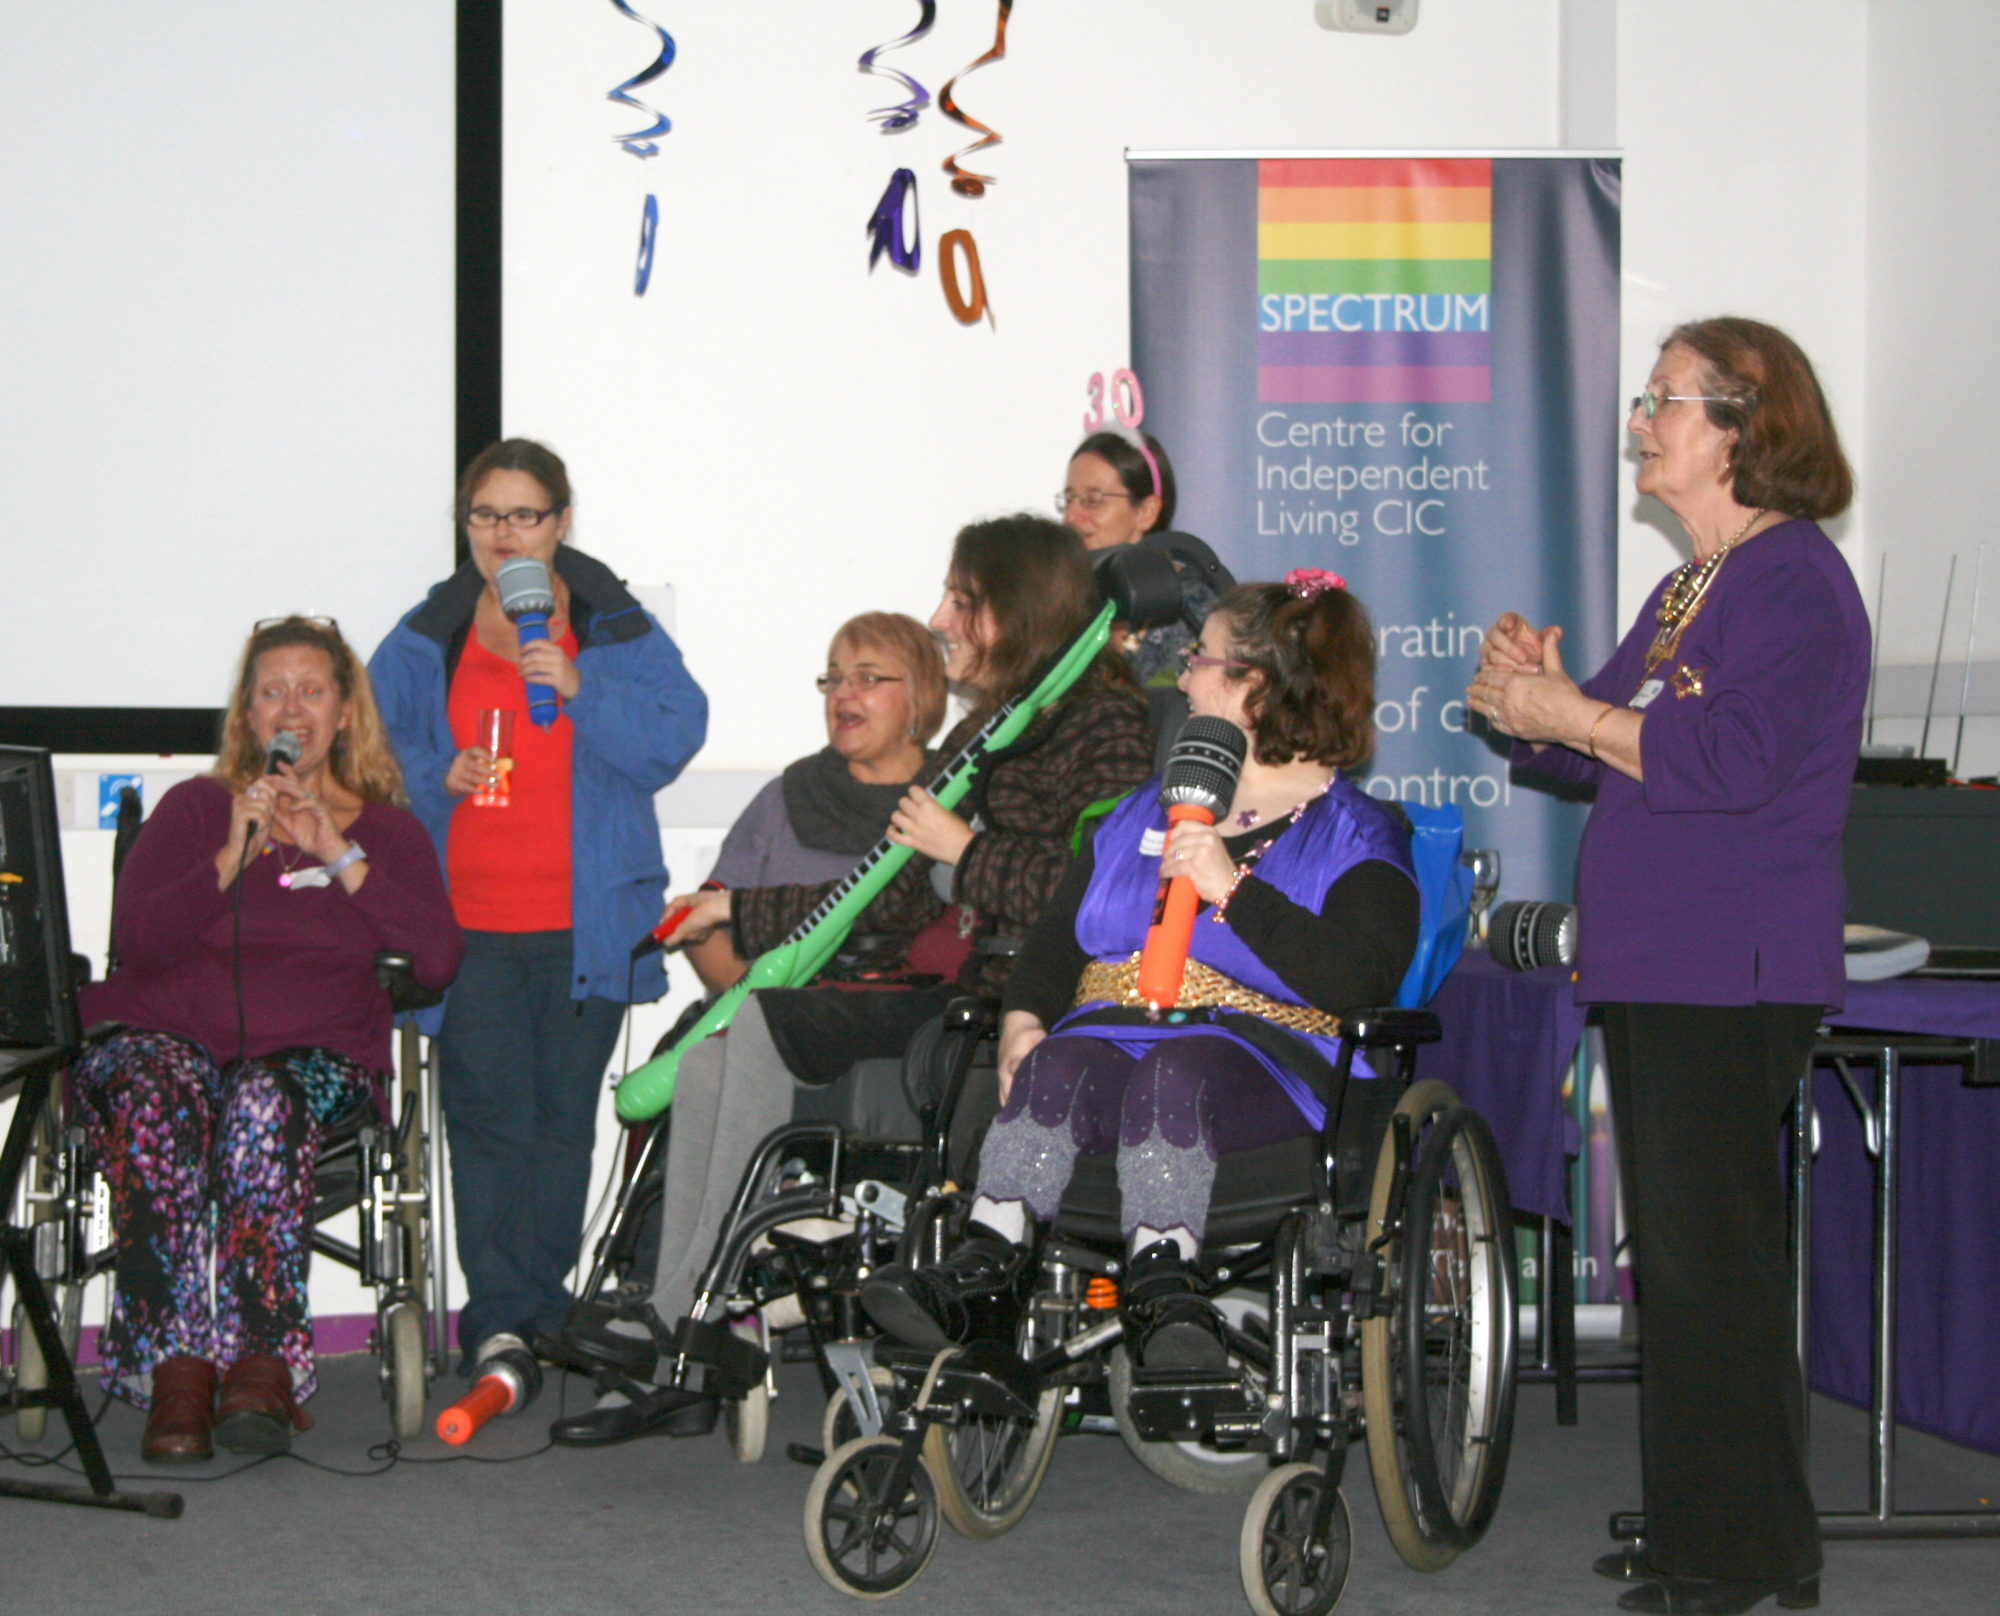 Group of Disabled People with inflatable musical instruments